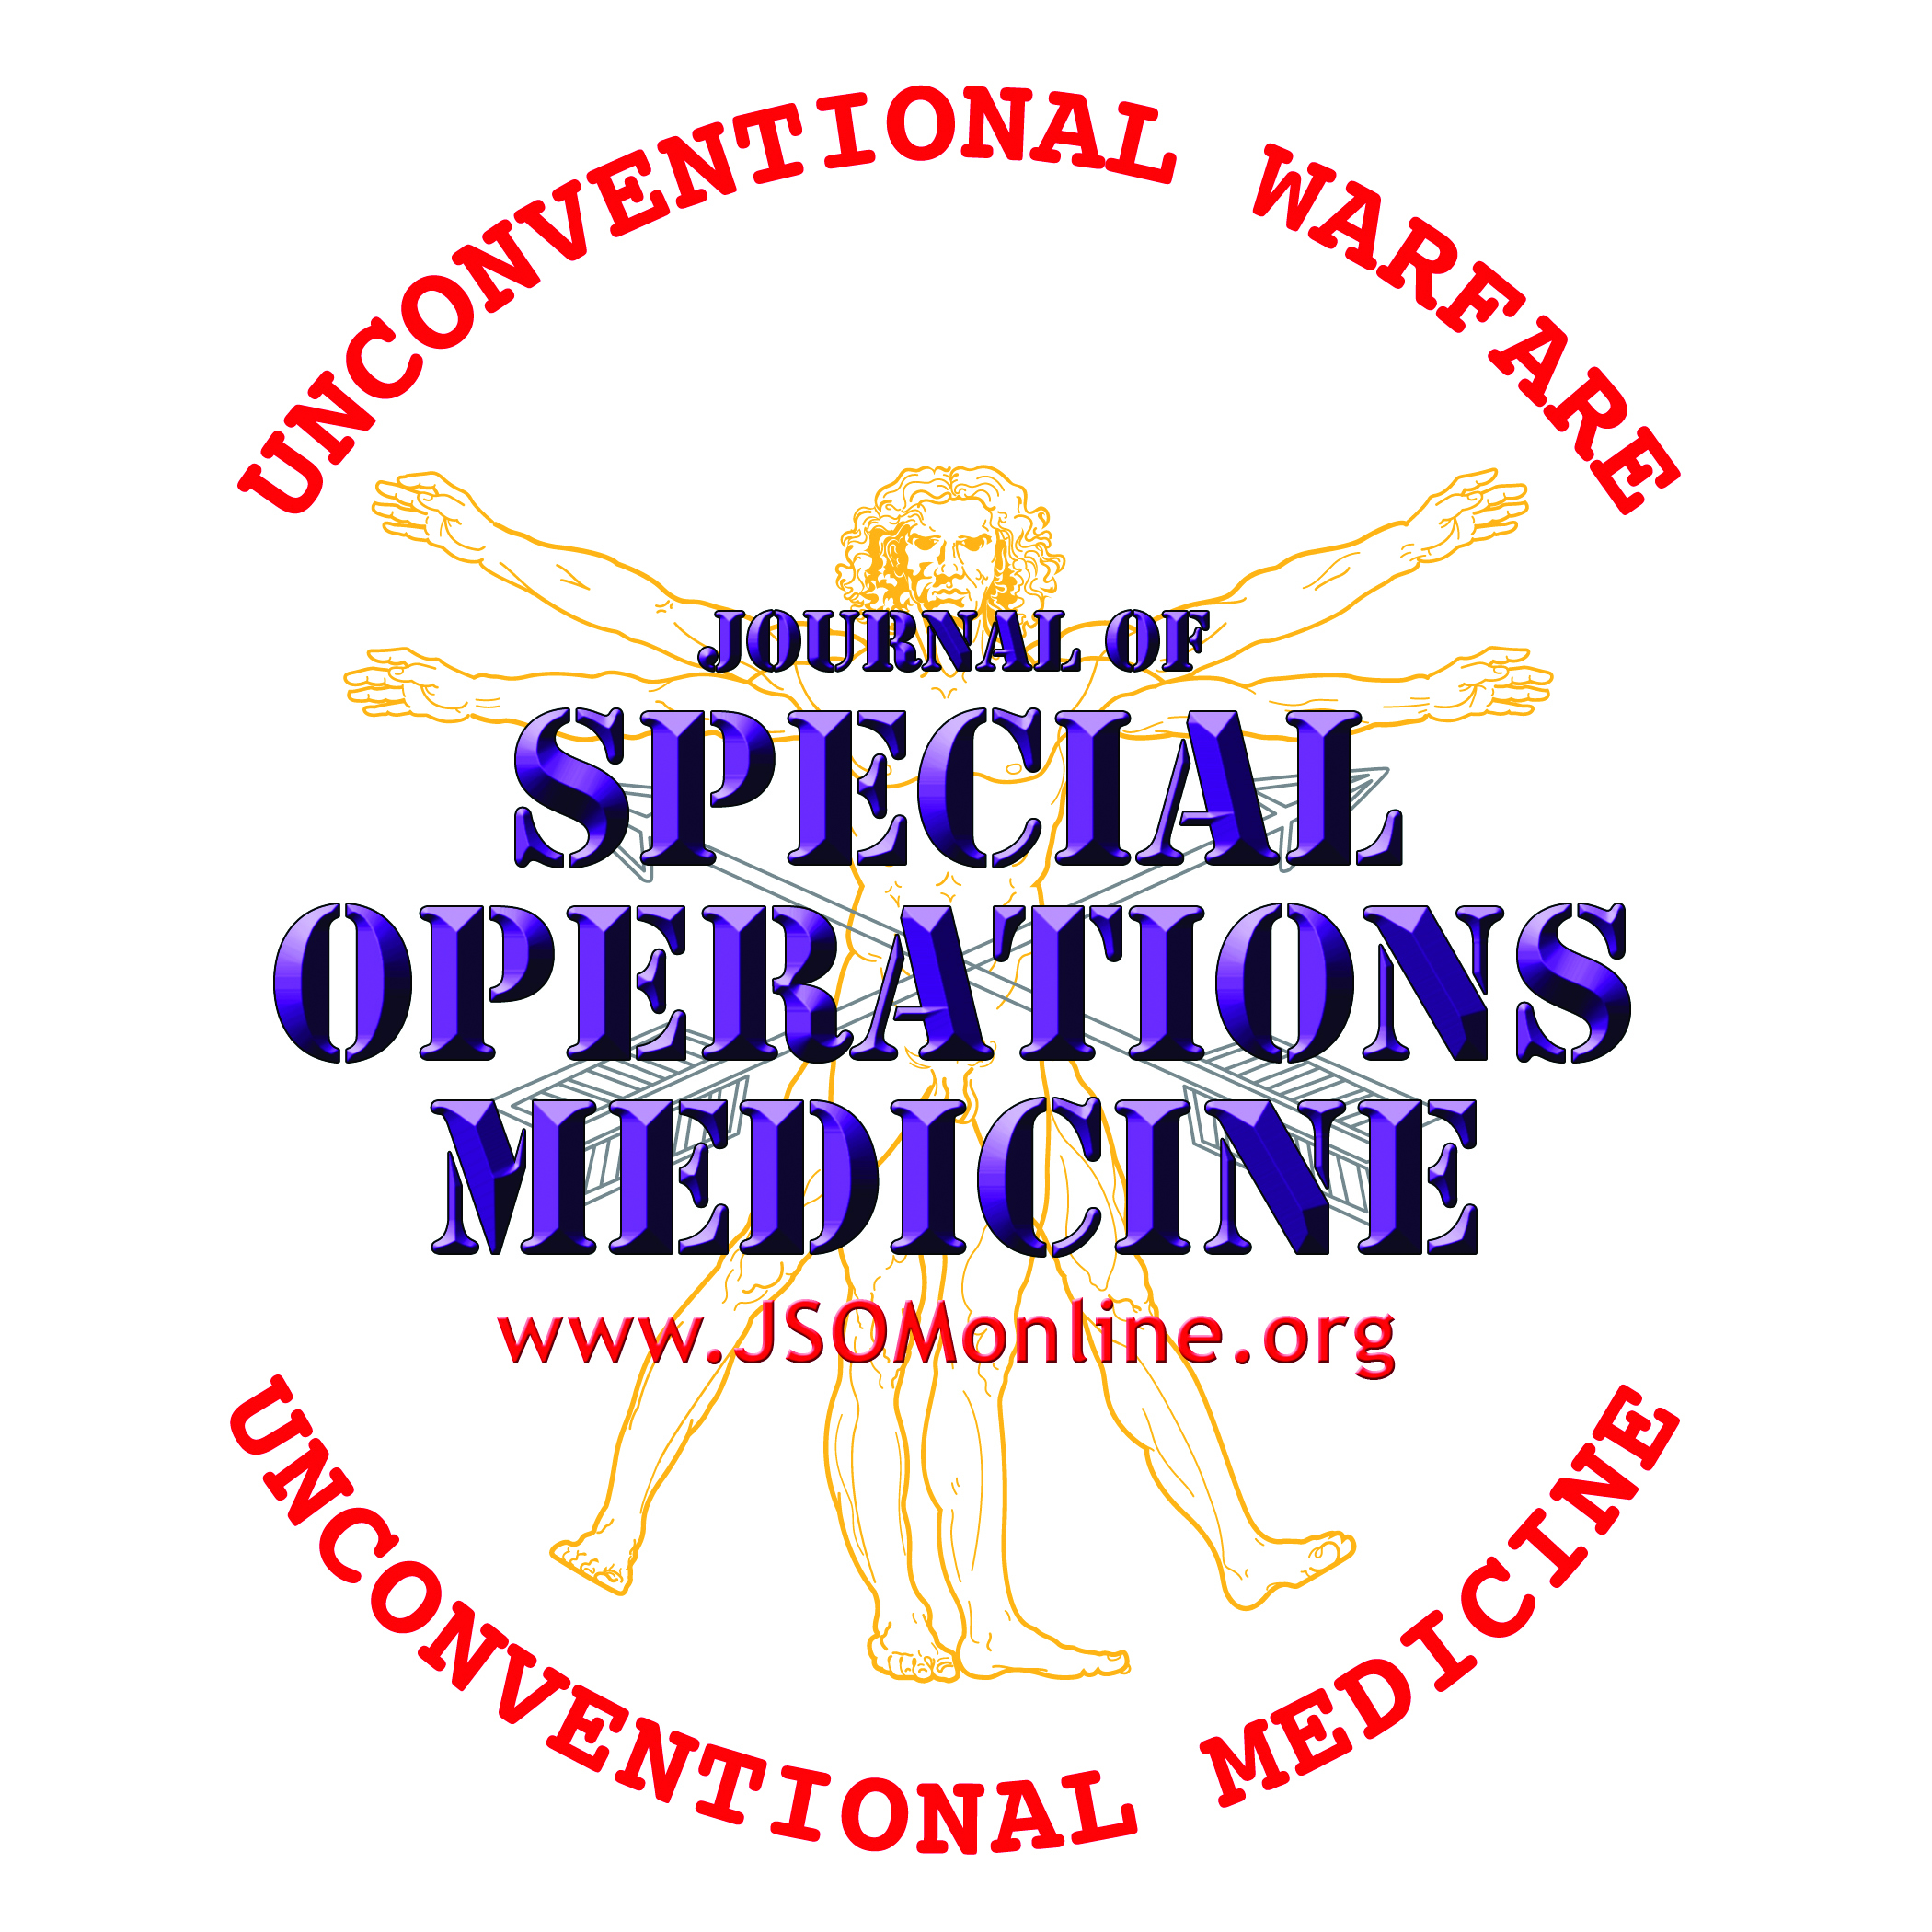 Journal of Special Operations Medicine Logo